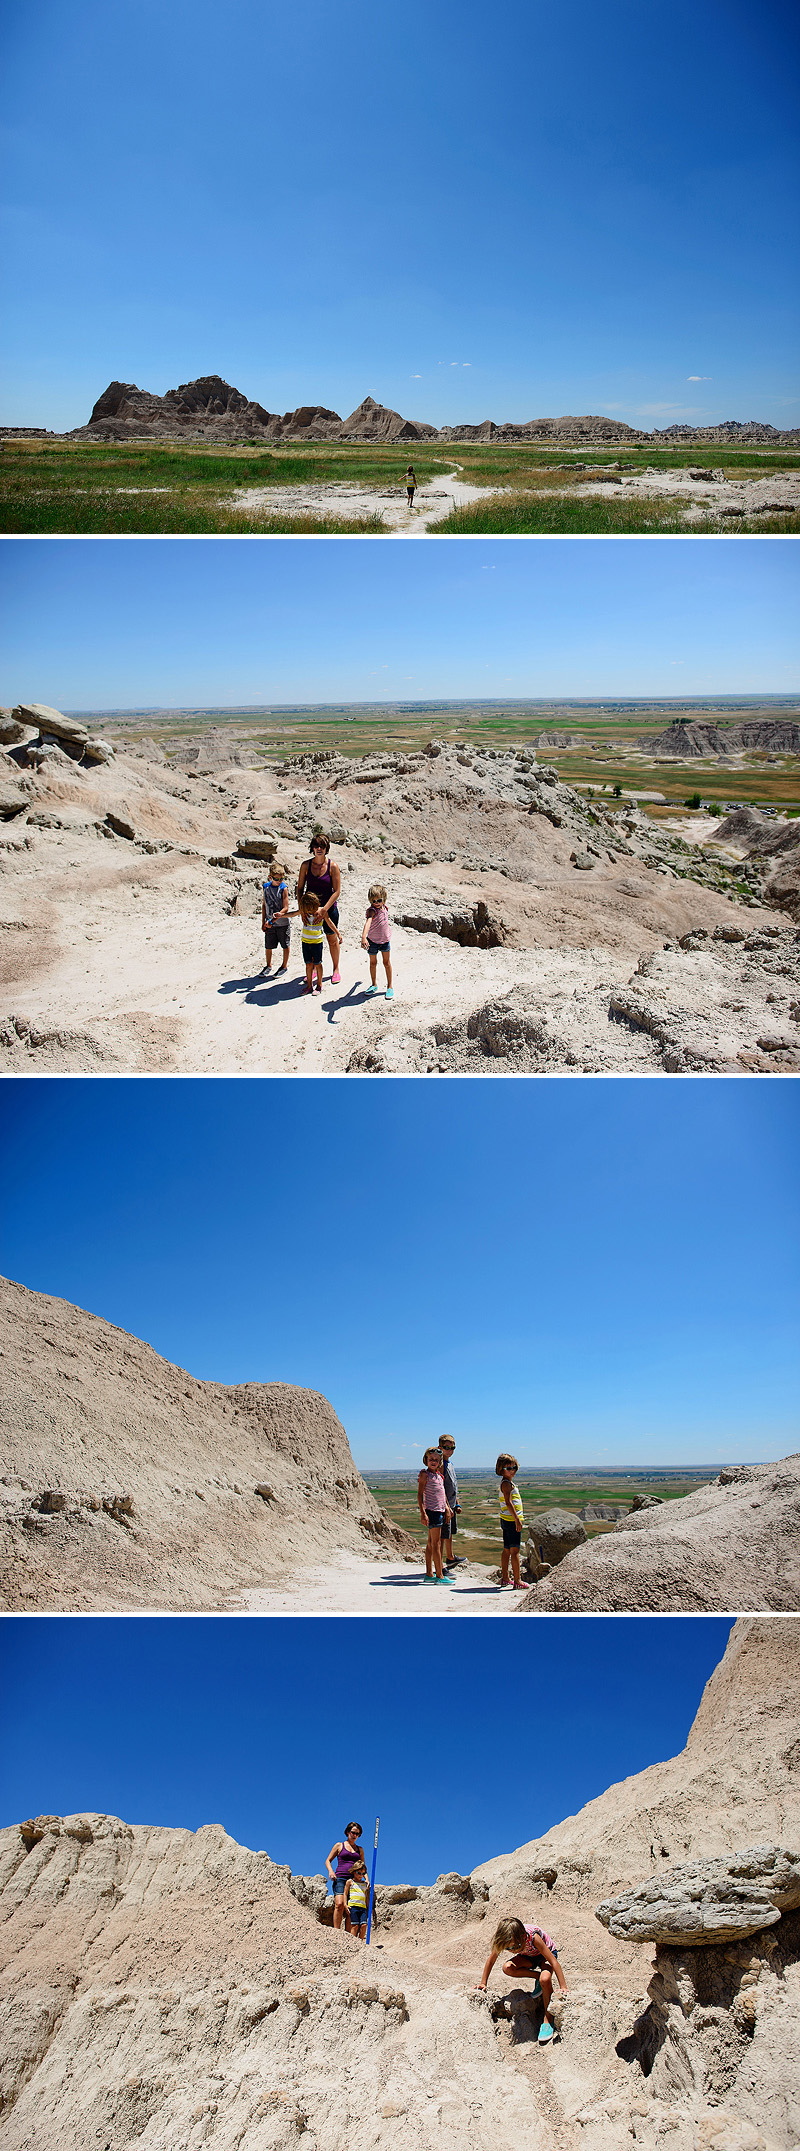 kids climbing on rocks in the badlands